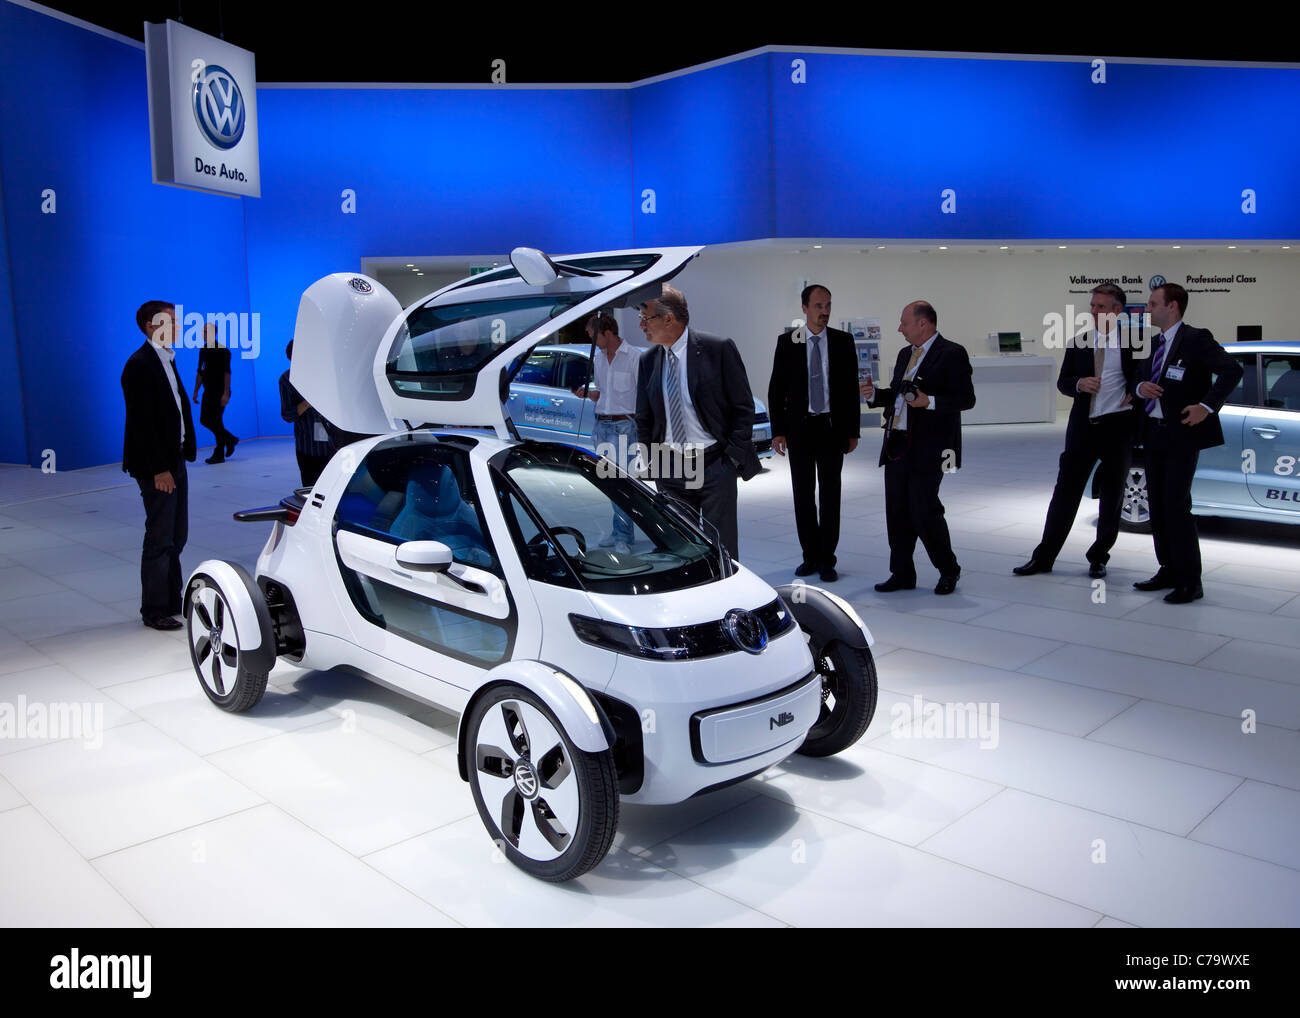 VW Volkswagen e-car Nils on the IAA 2011 International Motor Show in Frankfurt am Main, Germany - Stock Image